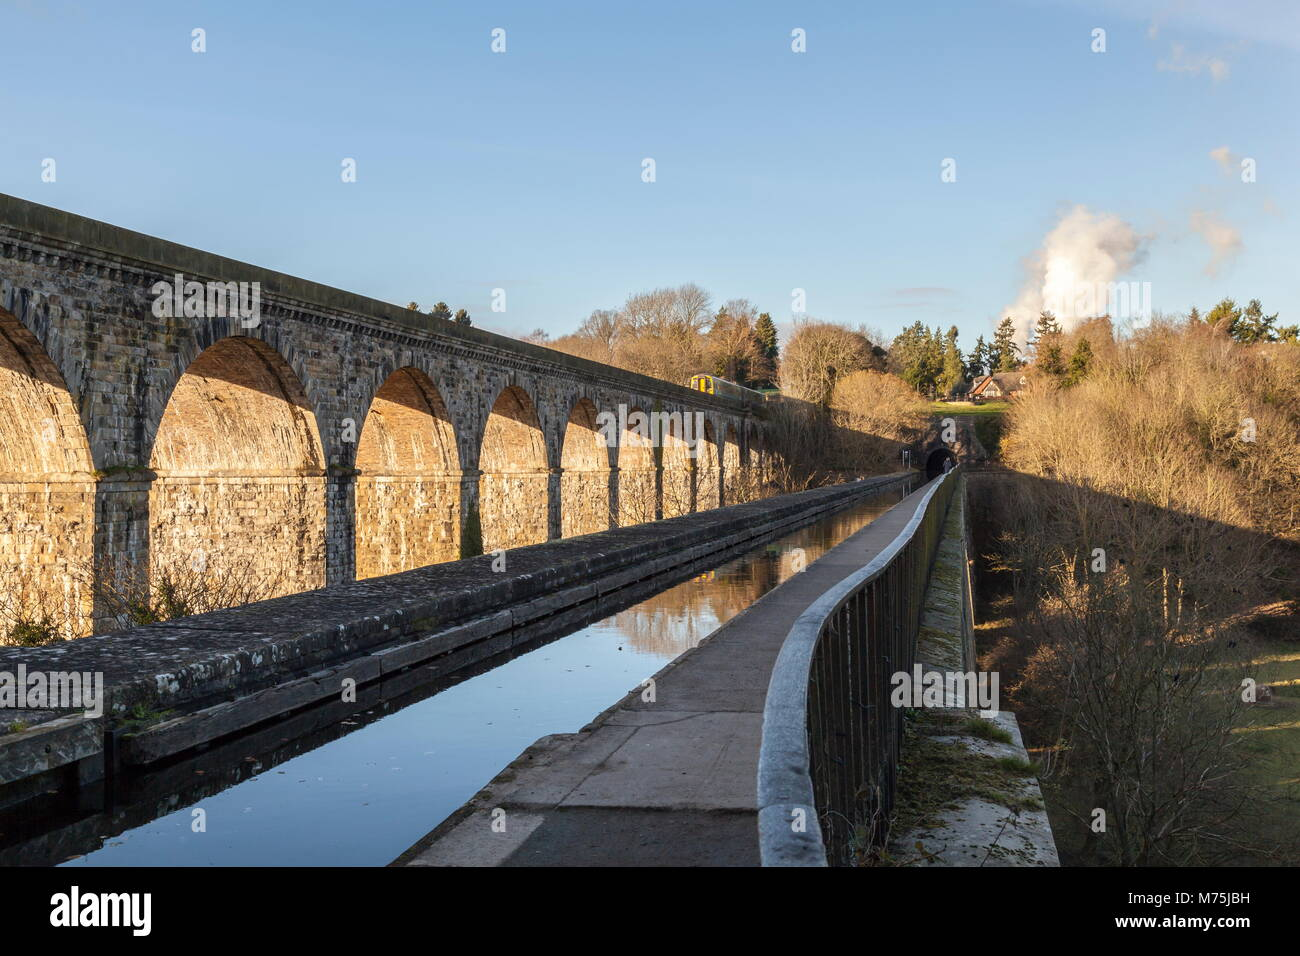 A passenger train crosses over the viaduct while viewed from the aqueduct towpath of the Llangollen Canal, Ceiriog - Stock Image